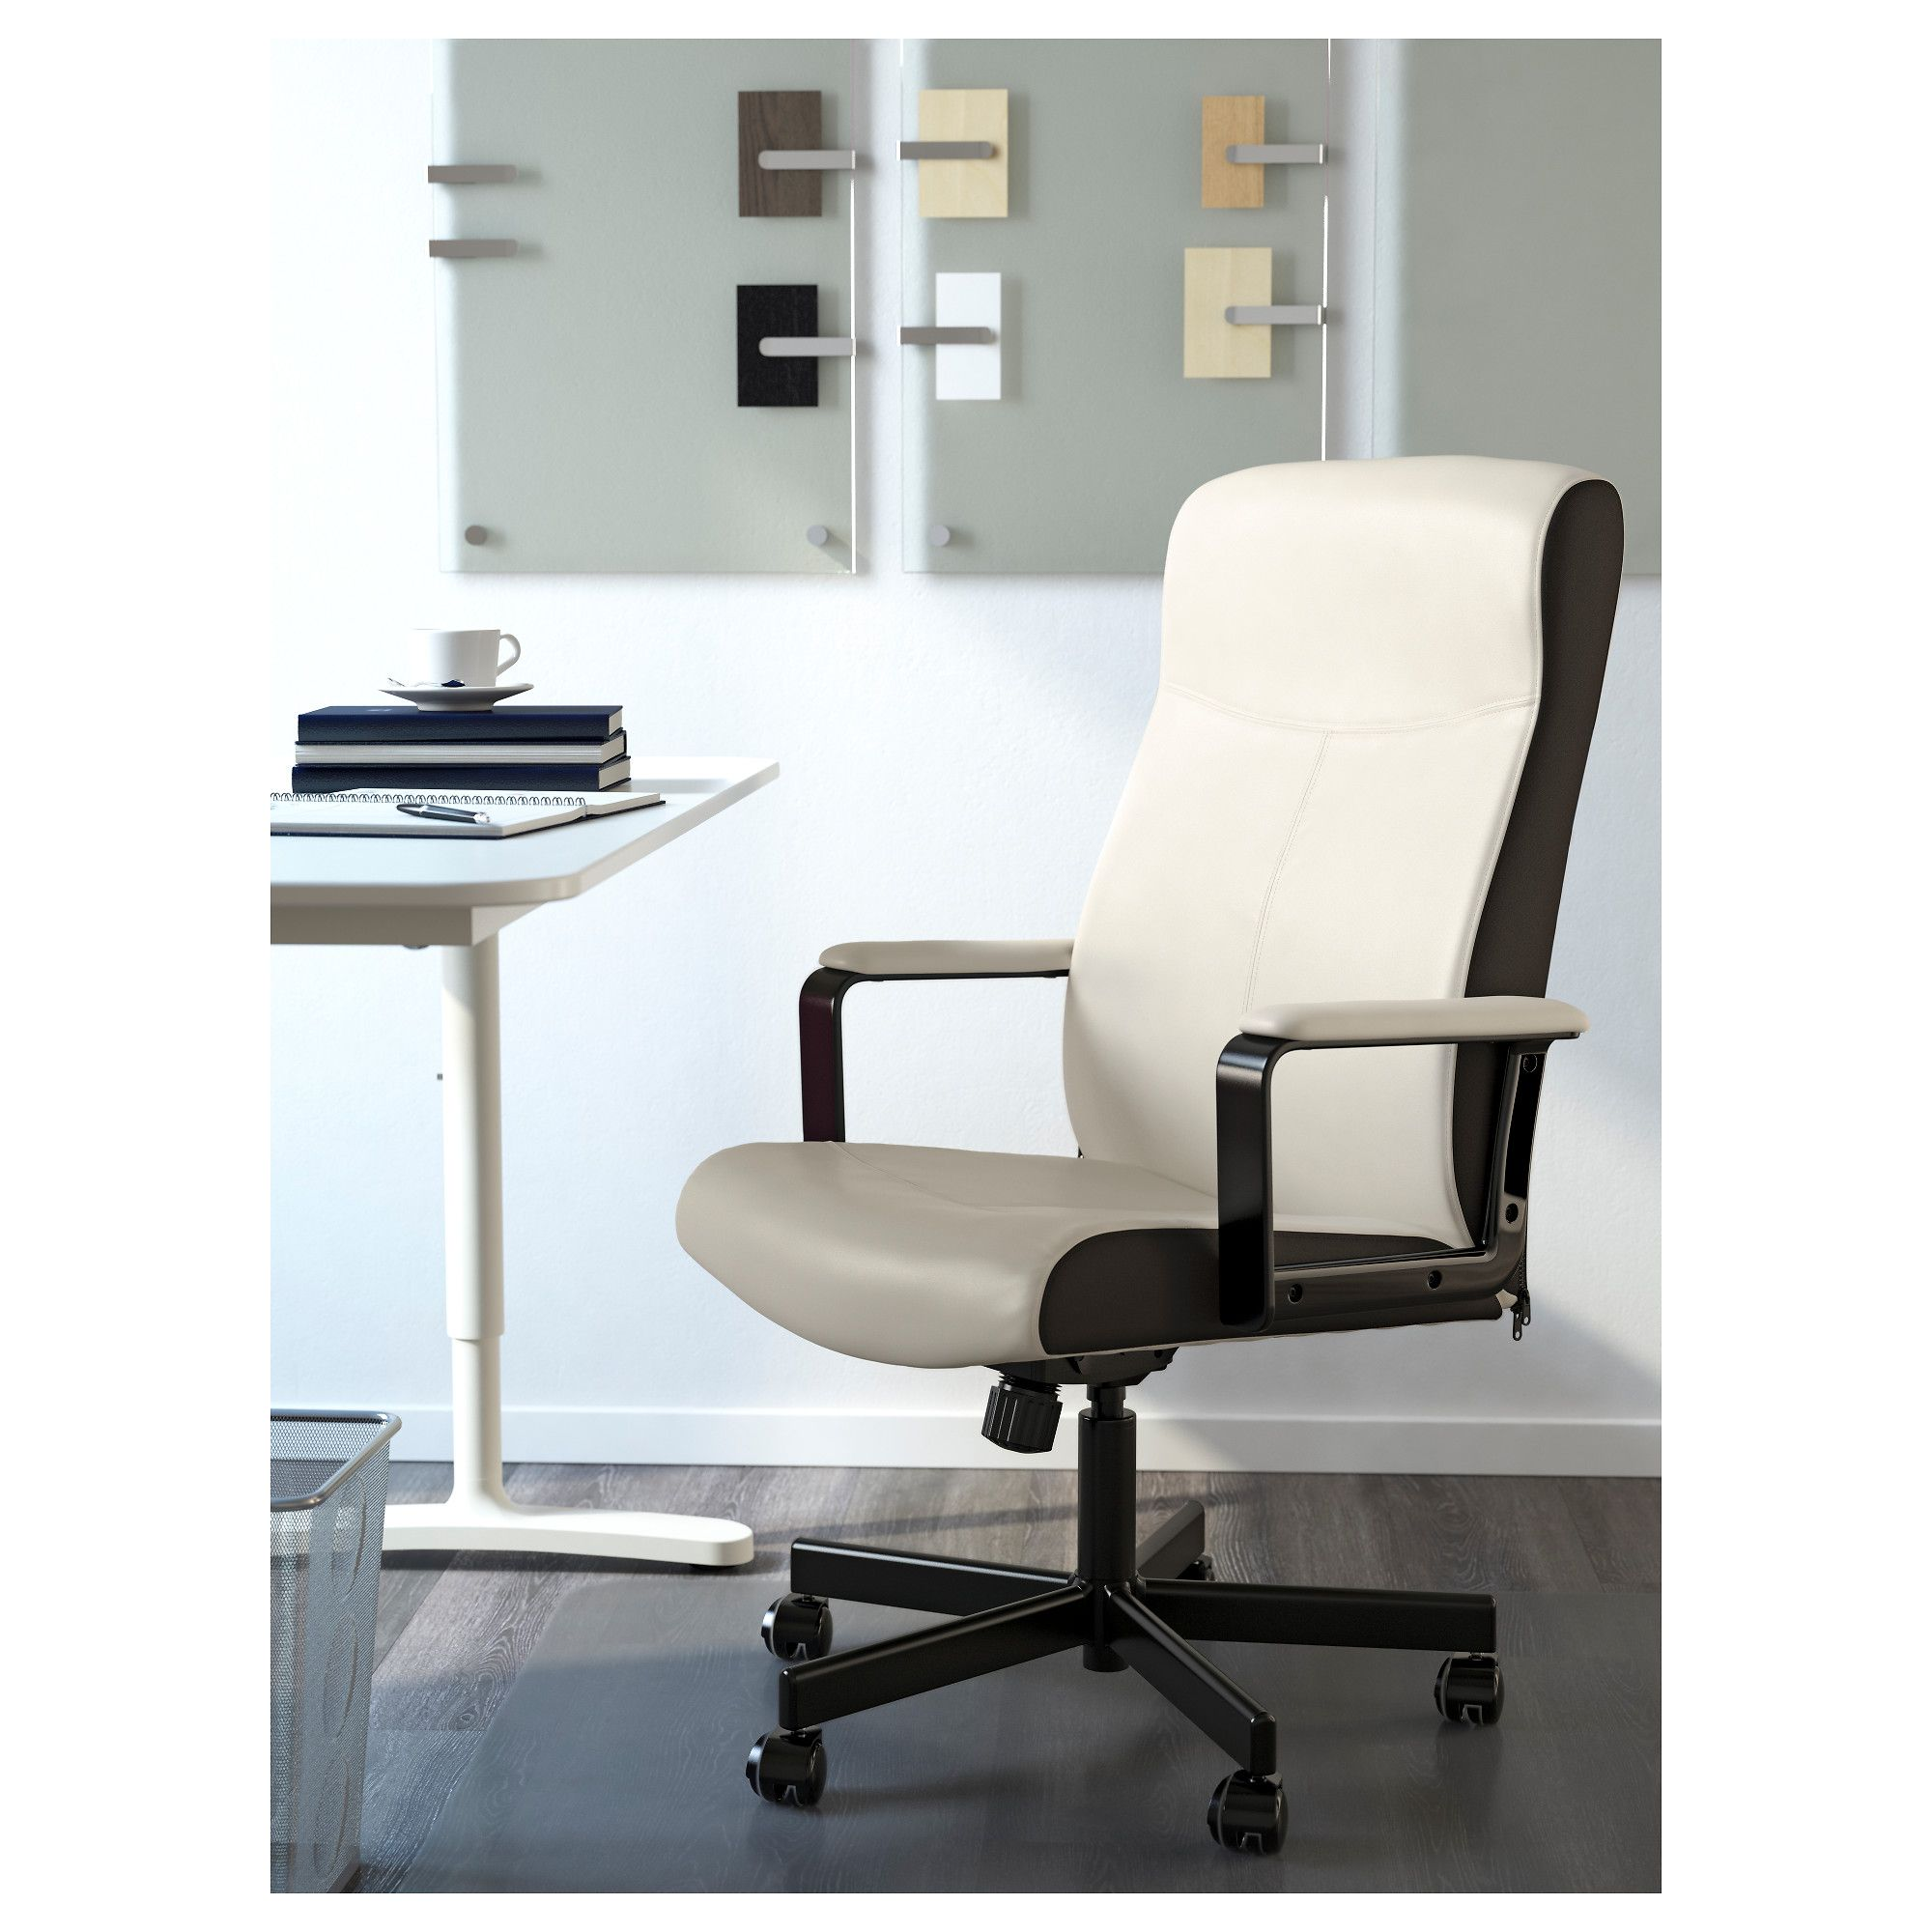 IKEA MILLBERGET Swivel chair Kimstad white Most